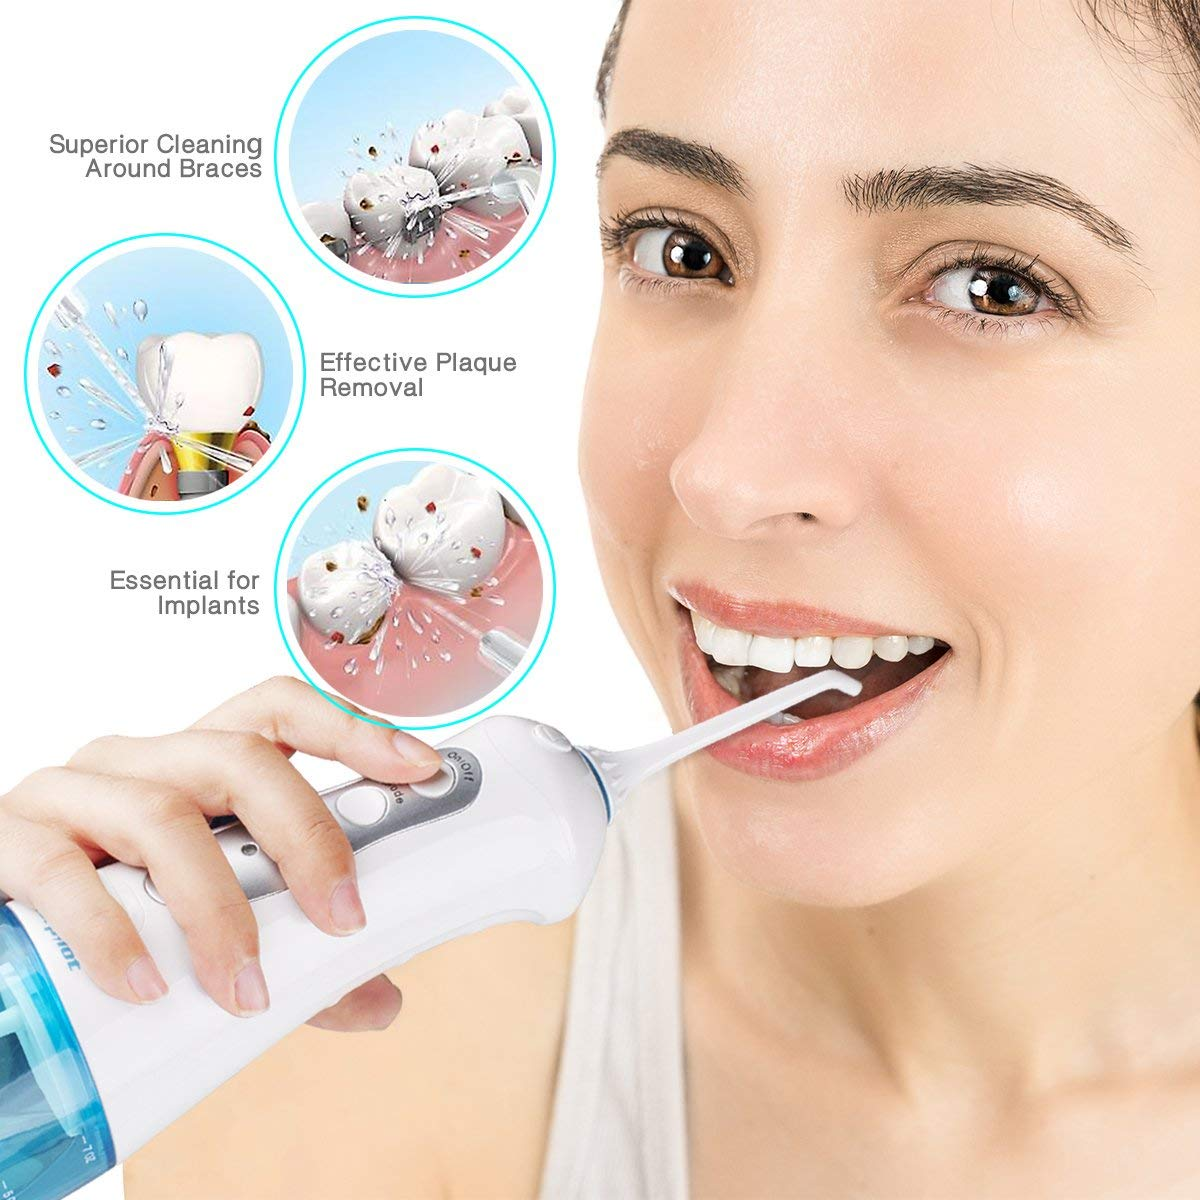 Water Flosser for Teeth,Morpilot Professional Cordless Dental Oral Irrigator,3 Modes with 4 Jet Nozzles,IPX7 Waterproof Flosser with Rechargeable Batteries for Home/Travel/Office Use (blue)